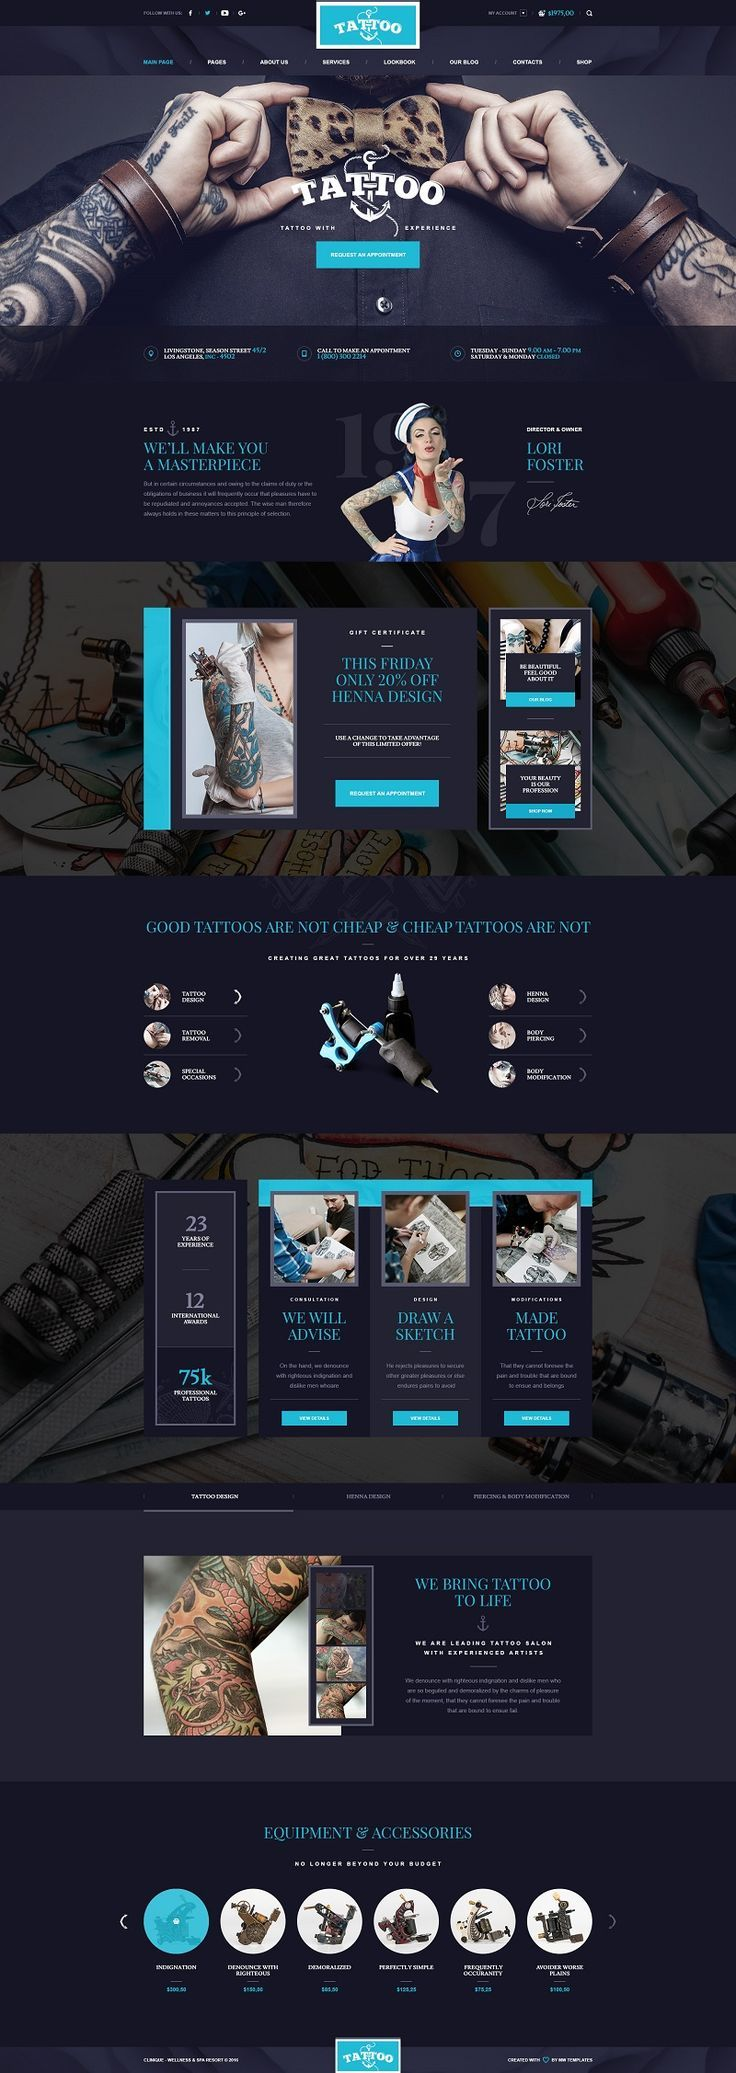 Website Design Ideas elegant modern electronics web design by pb Find This Pin And More On Website Design Inspiration